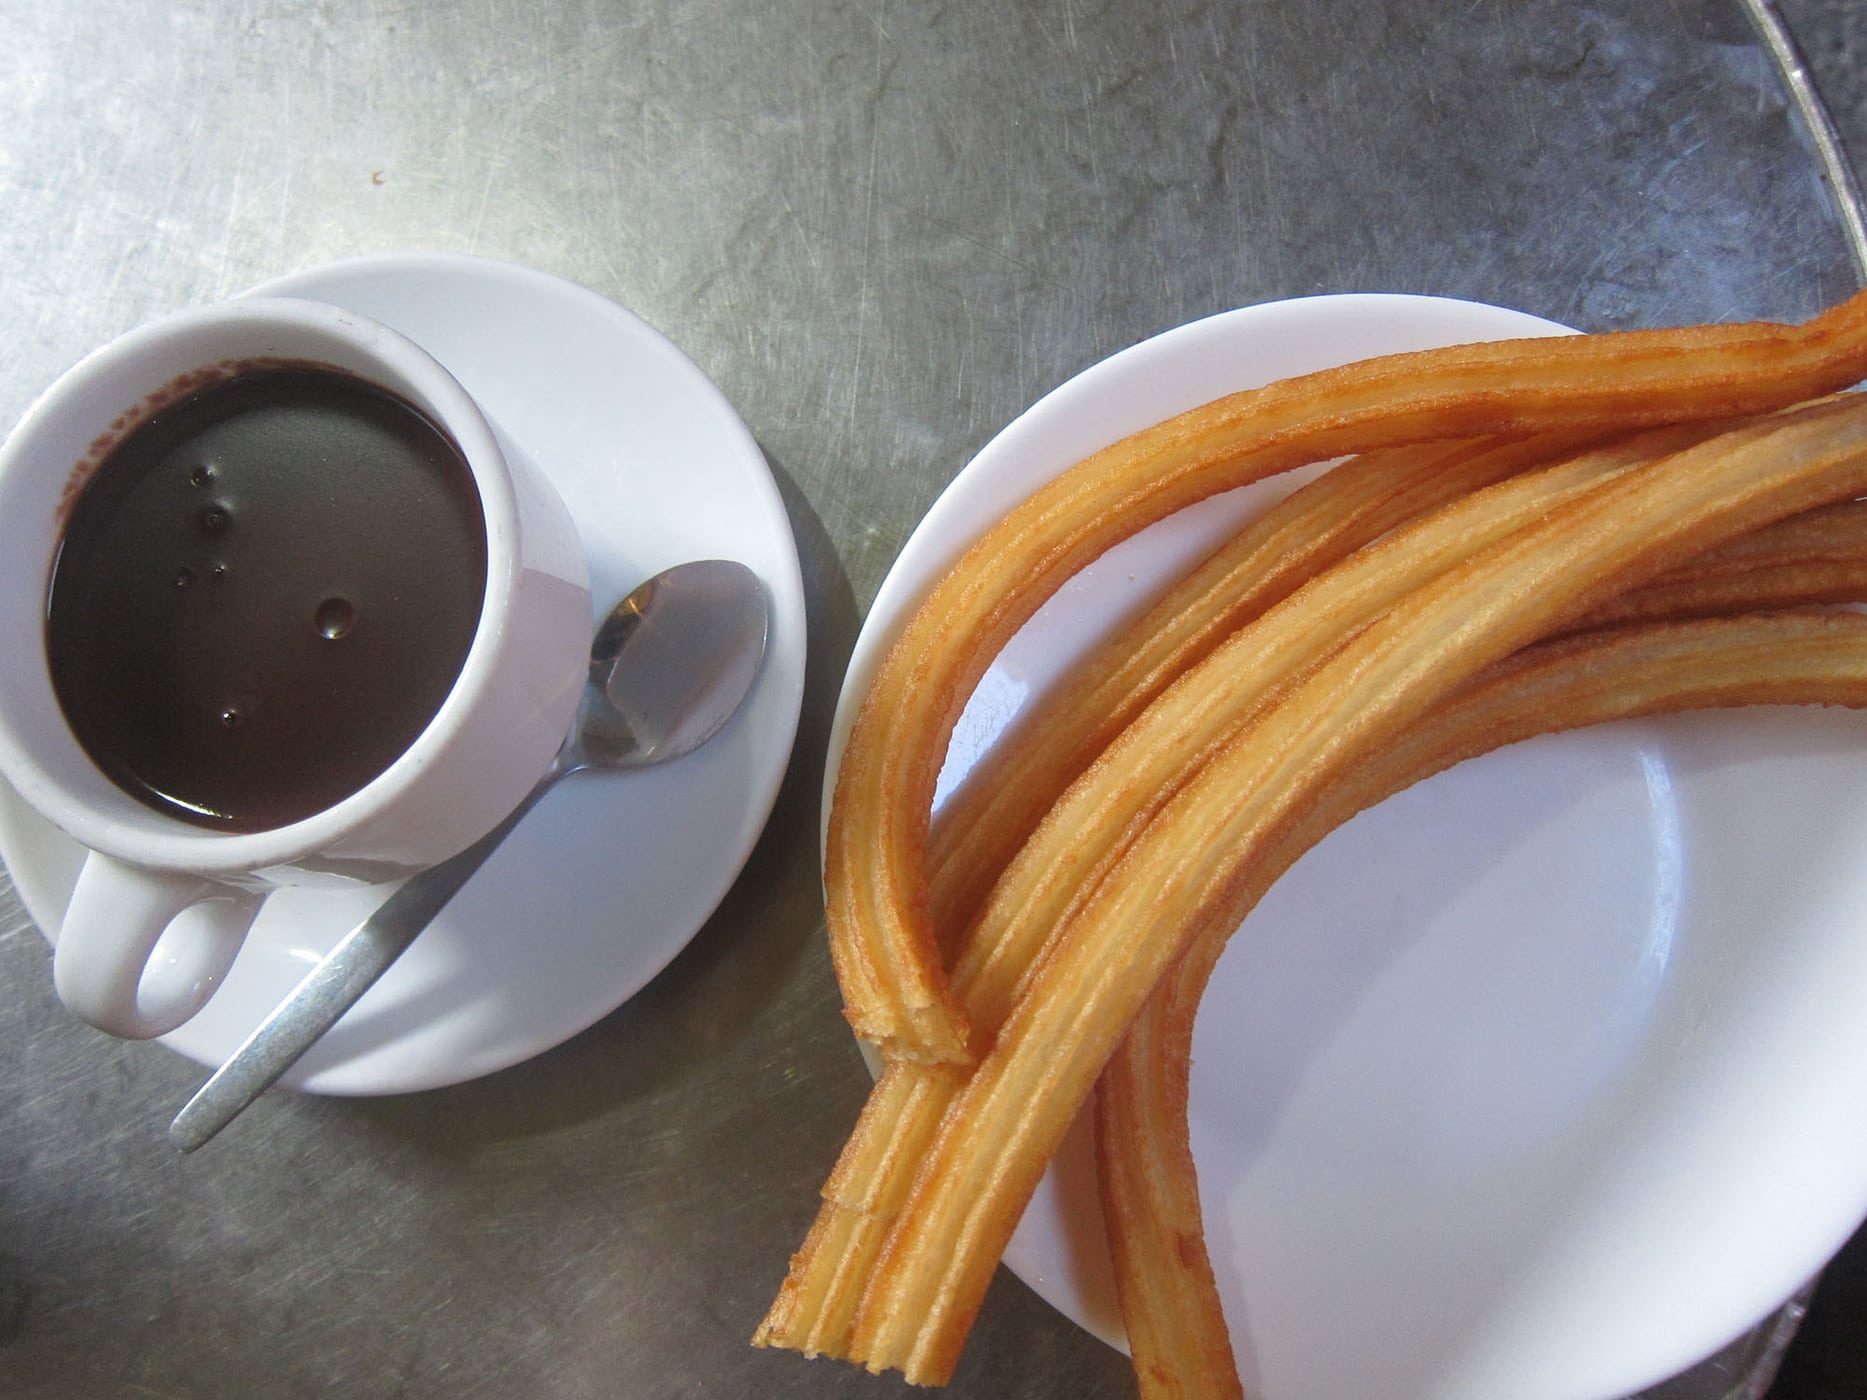 Chocolate con churros in Madrid, Spain.